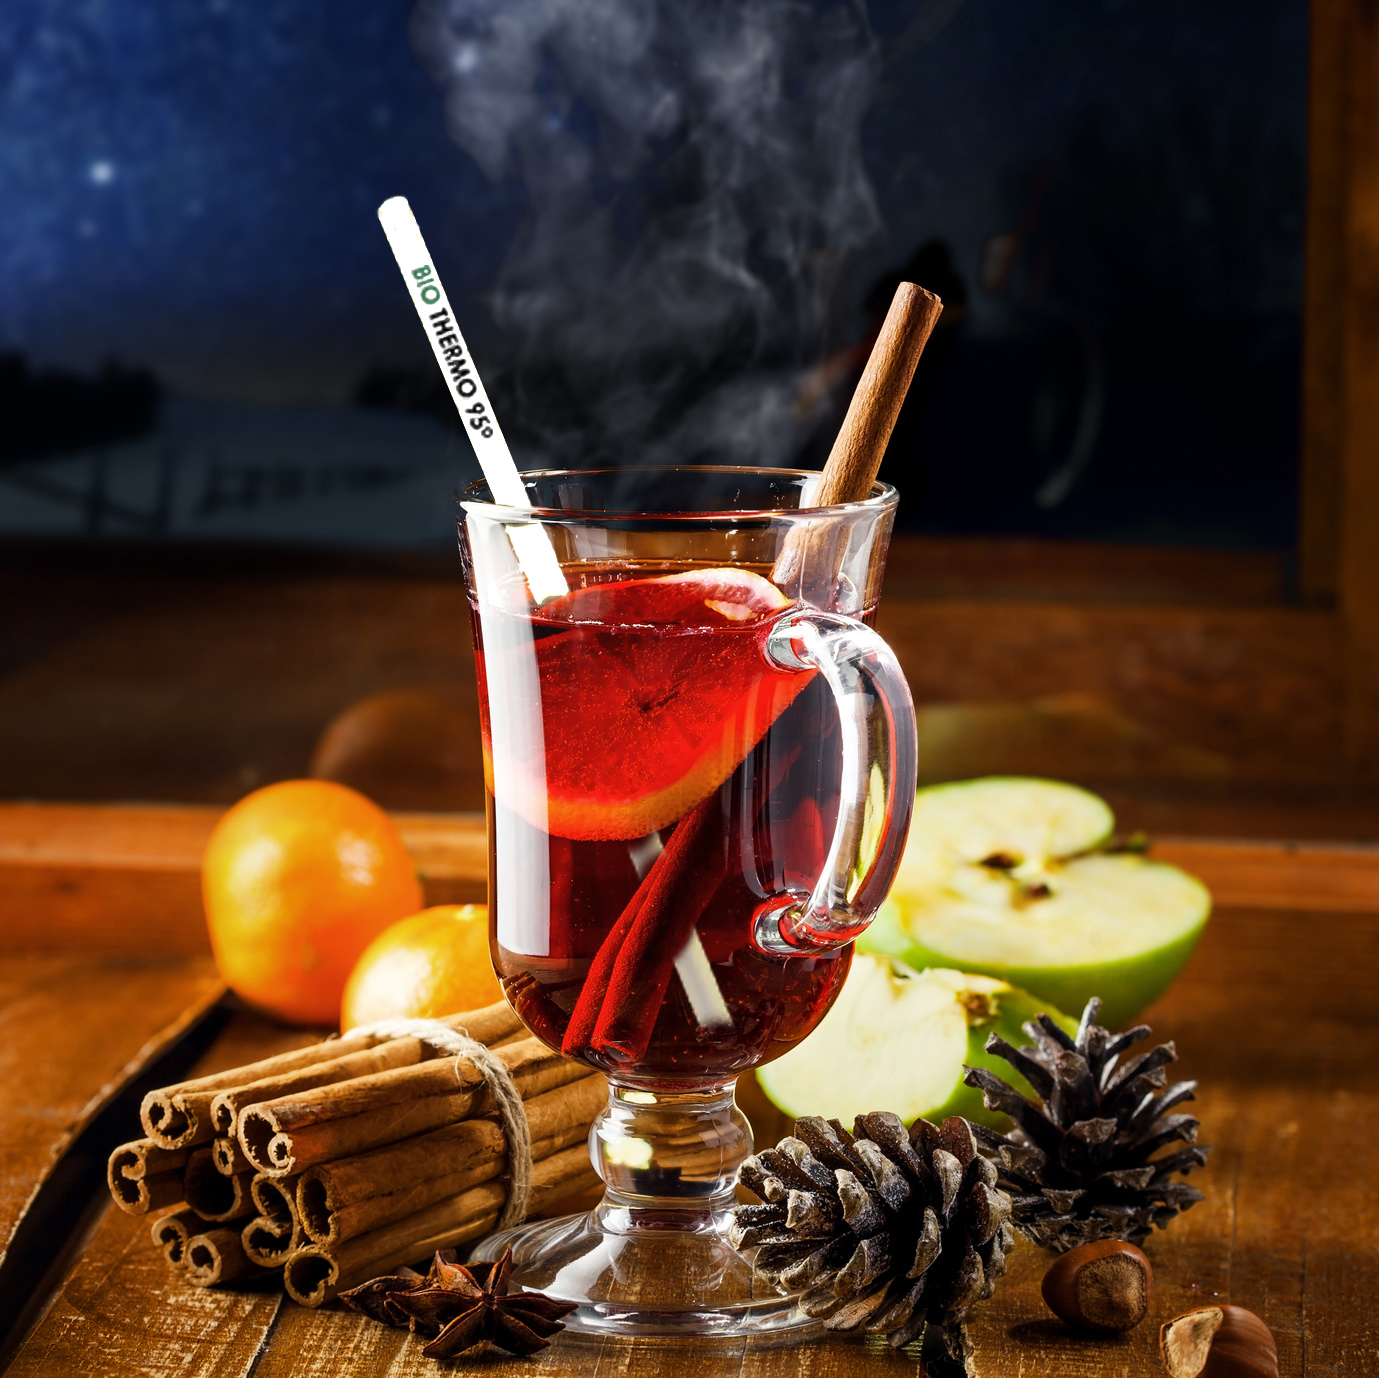 Traditional Winter Holiday Alcoholic Drink. Mulled Wine